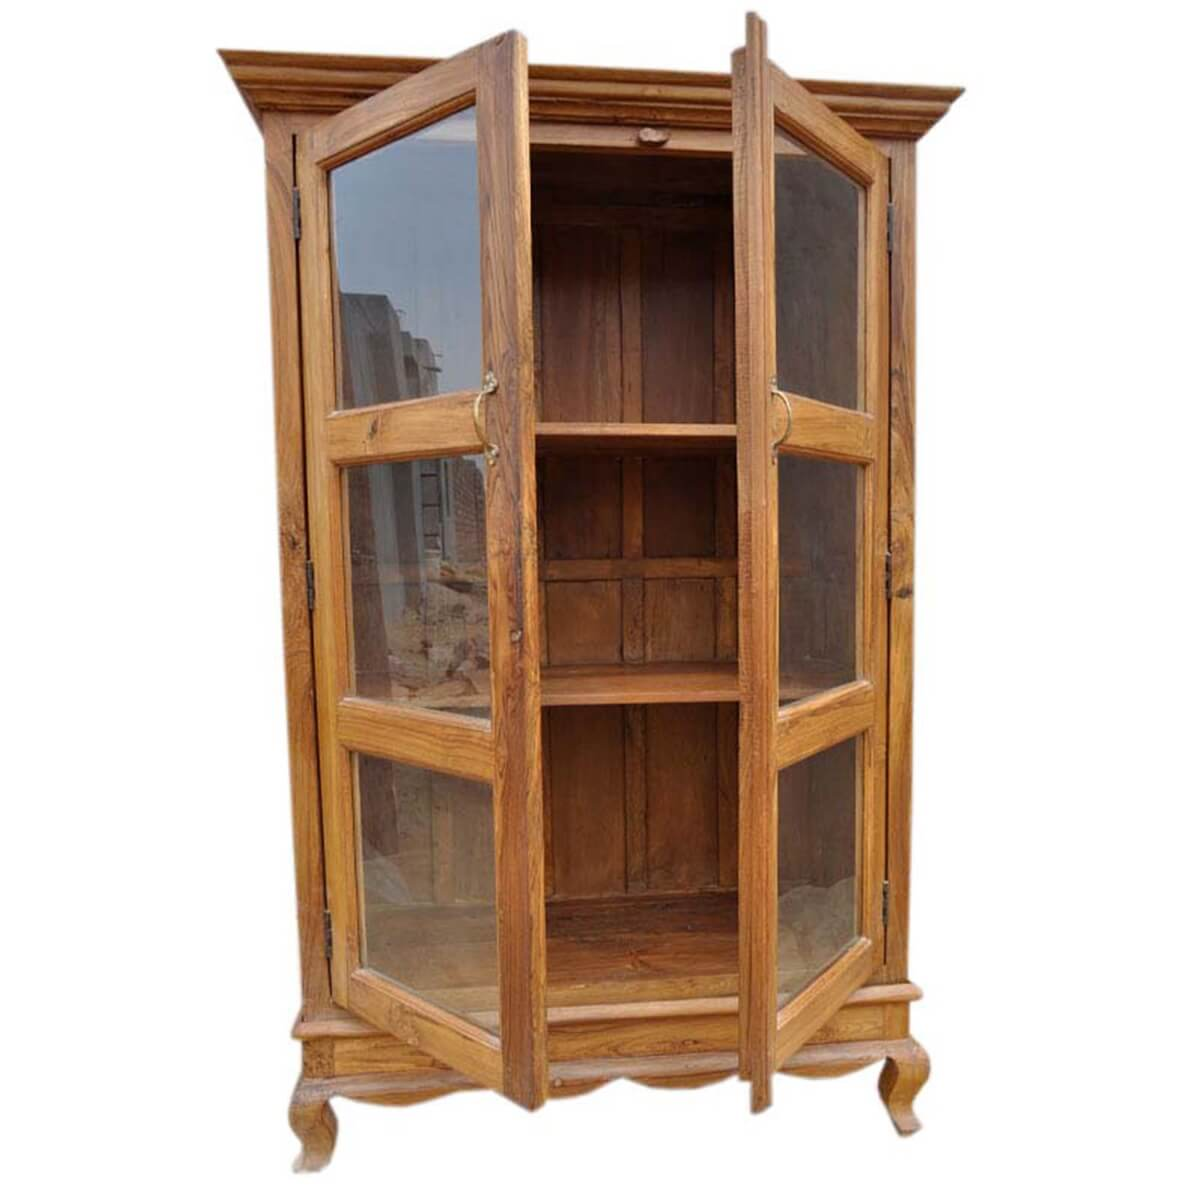 Inglis solid wood glass door freestanding bookcase for Wood bookcase with doors